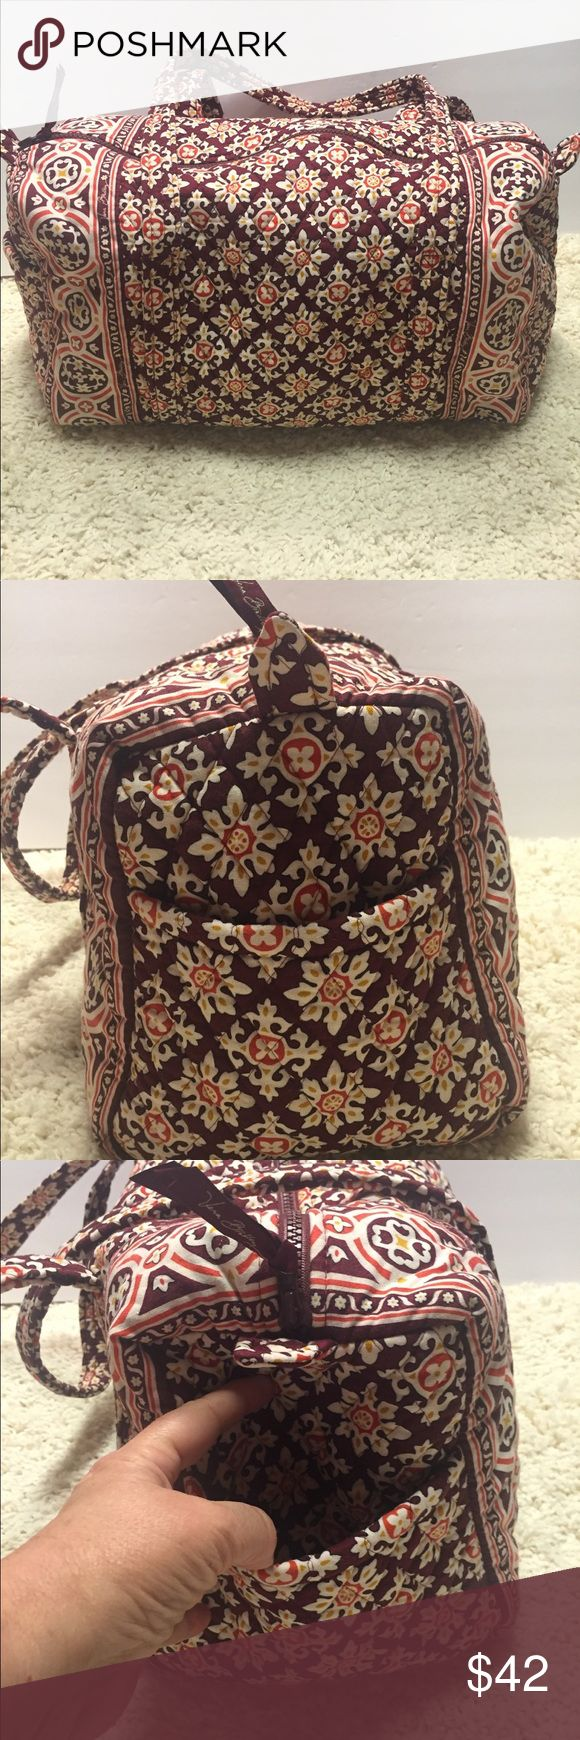 "[Vera Bradley] travel bag zipper closure shoulder [Vera Bradley] travel bag with zipper closure and shoulder strap  Excellent preowned condition  CLEAN One pocket on the end of bag.  Interior has no pockets just lots of room for storage Bag is about 18"" wide and 11"" tall Vera Bradley Bags Travel Bags"